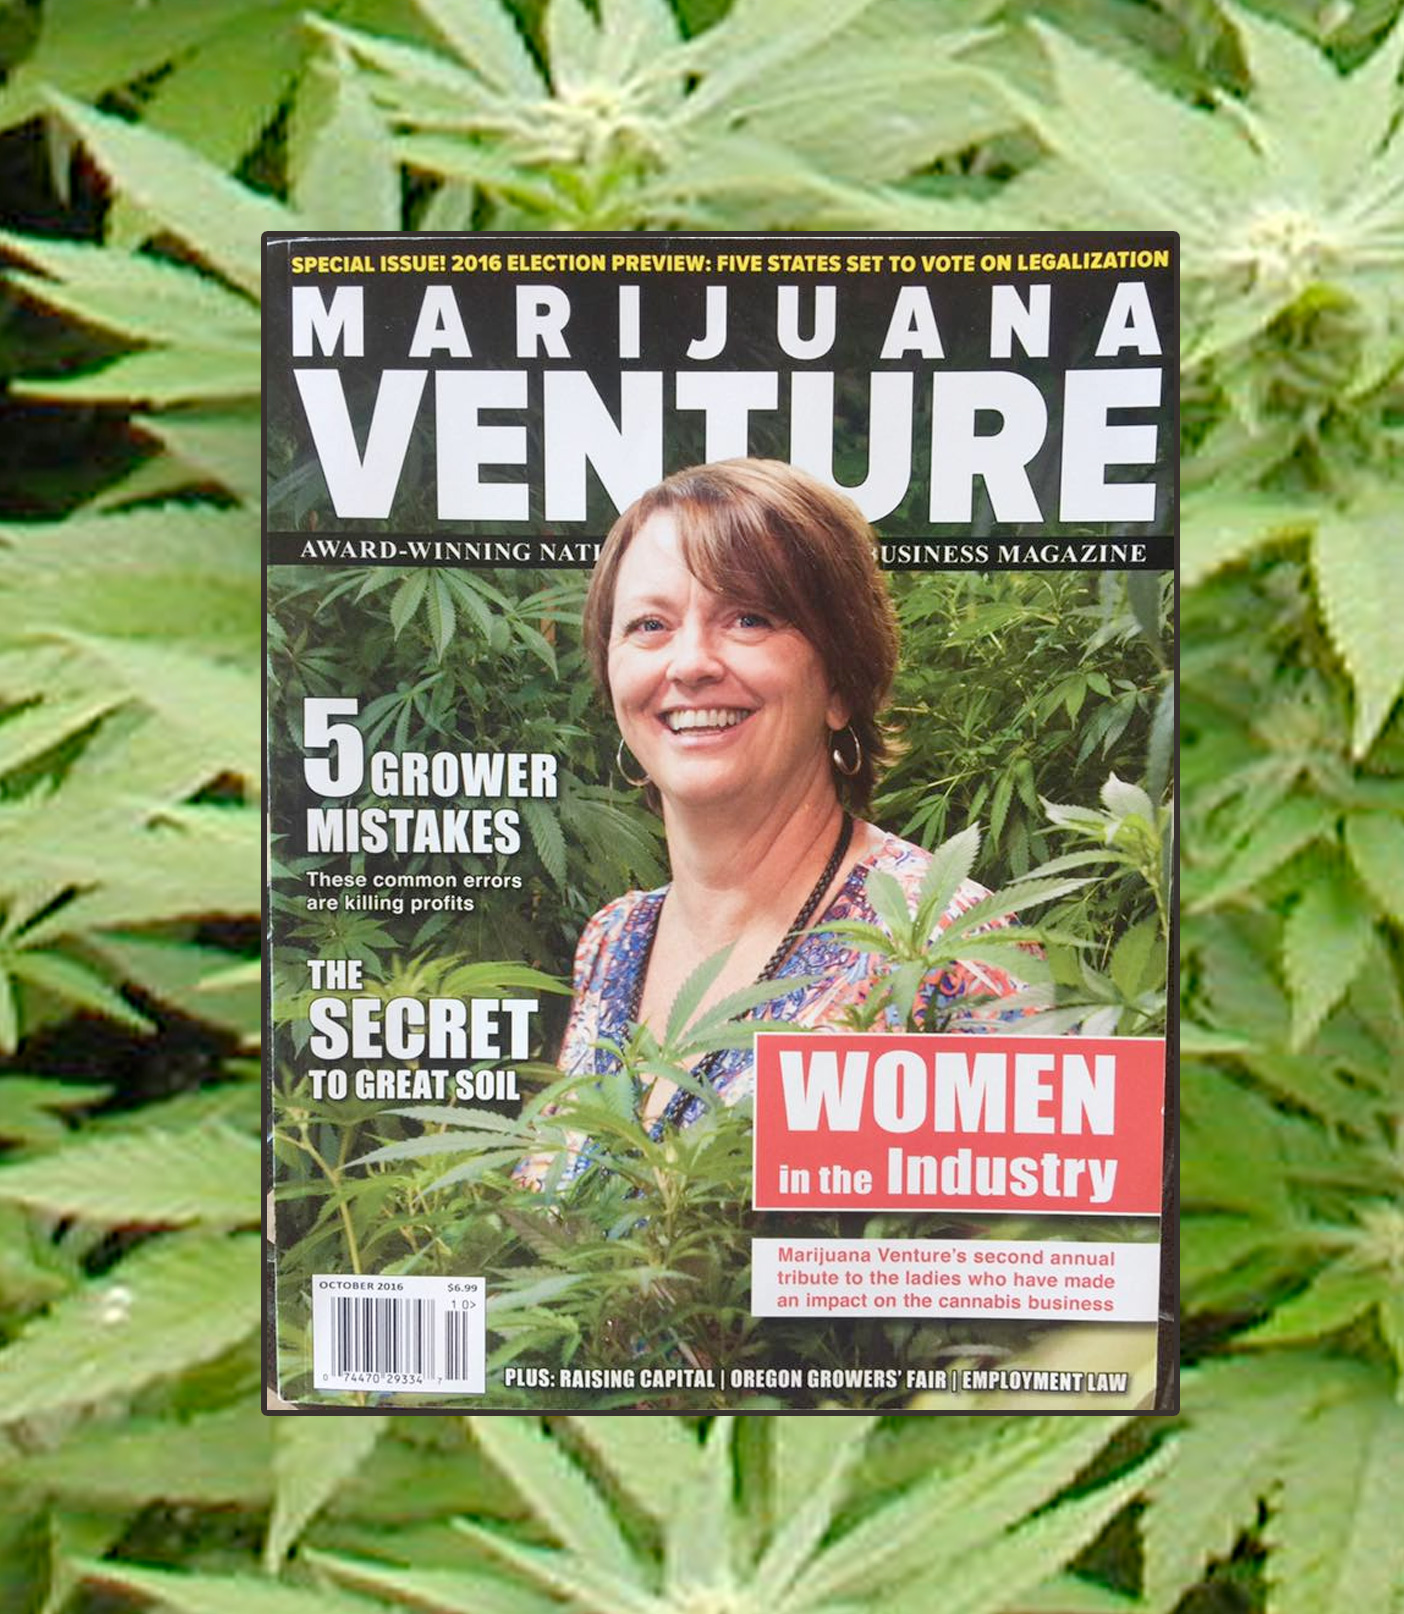 women-cannabis-susan-crownhart-SAINTS